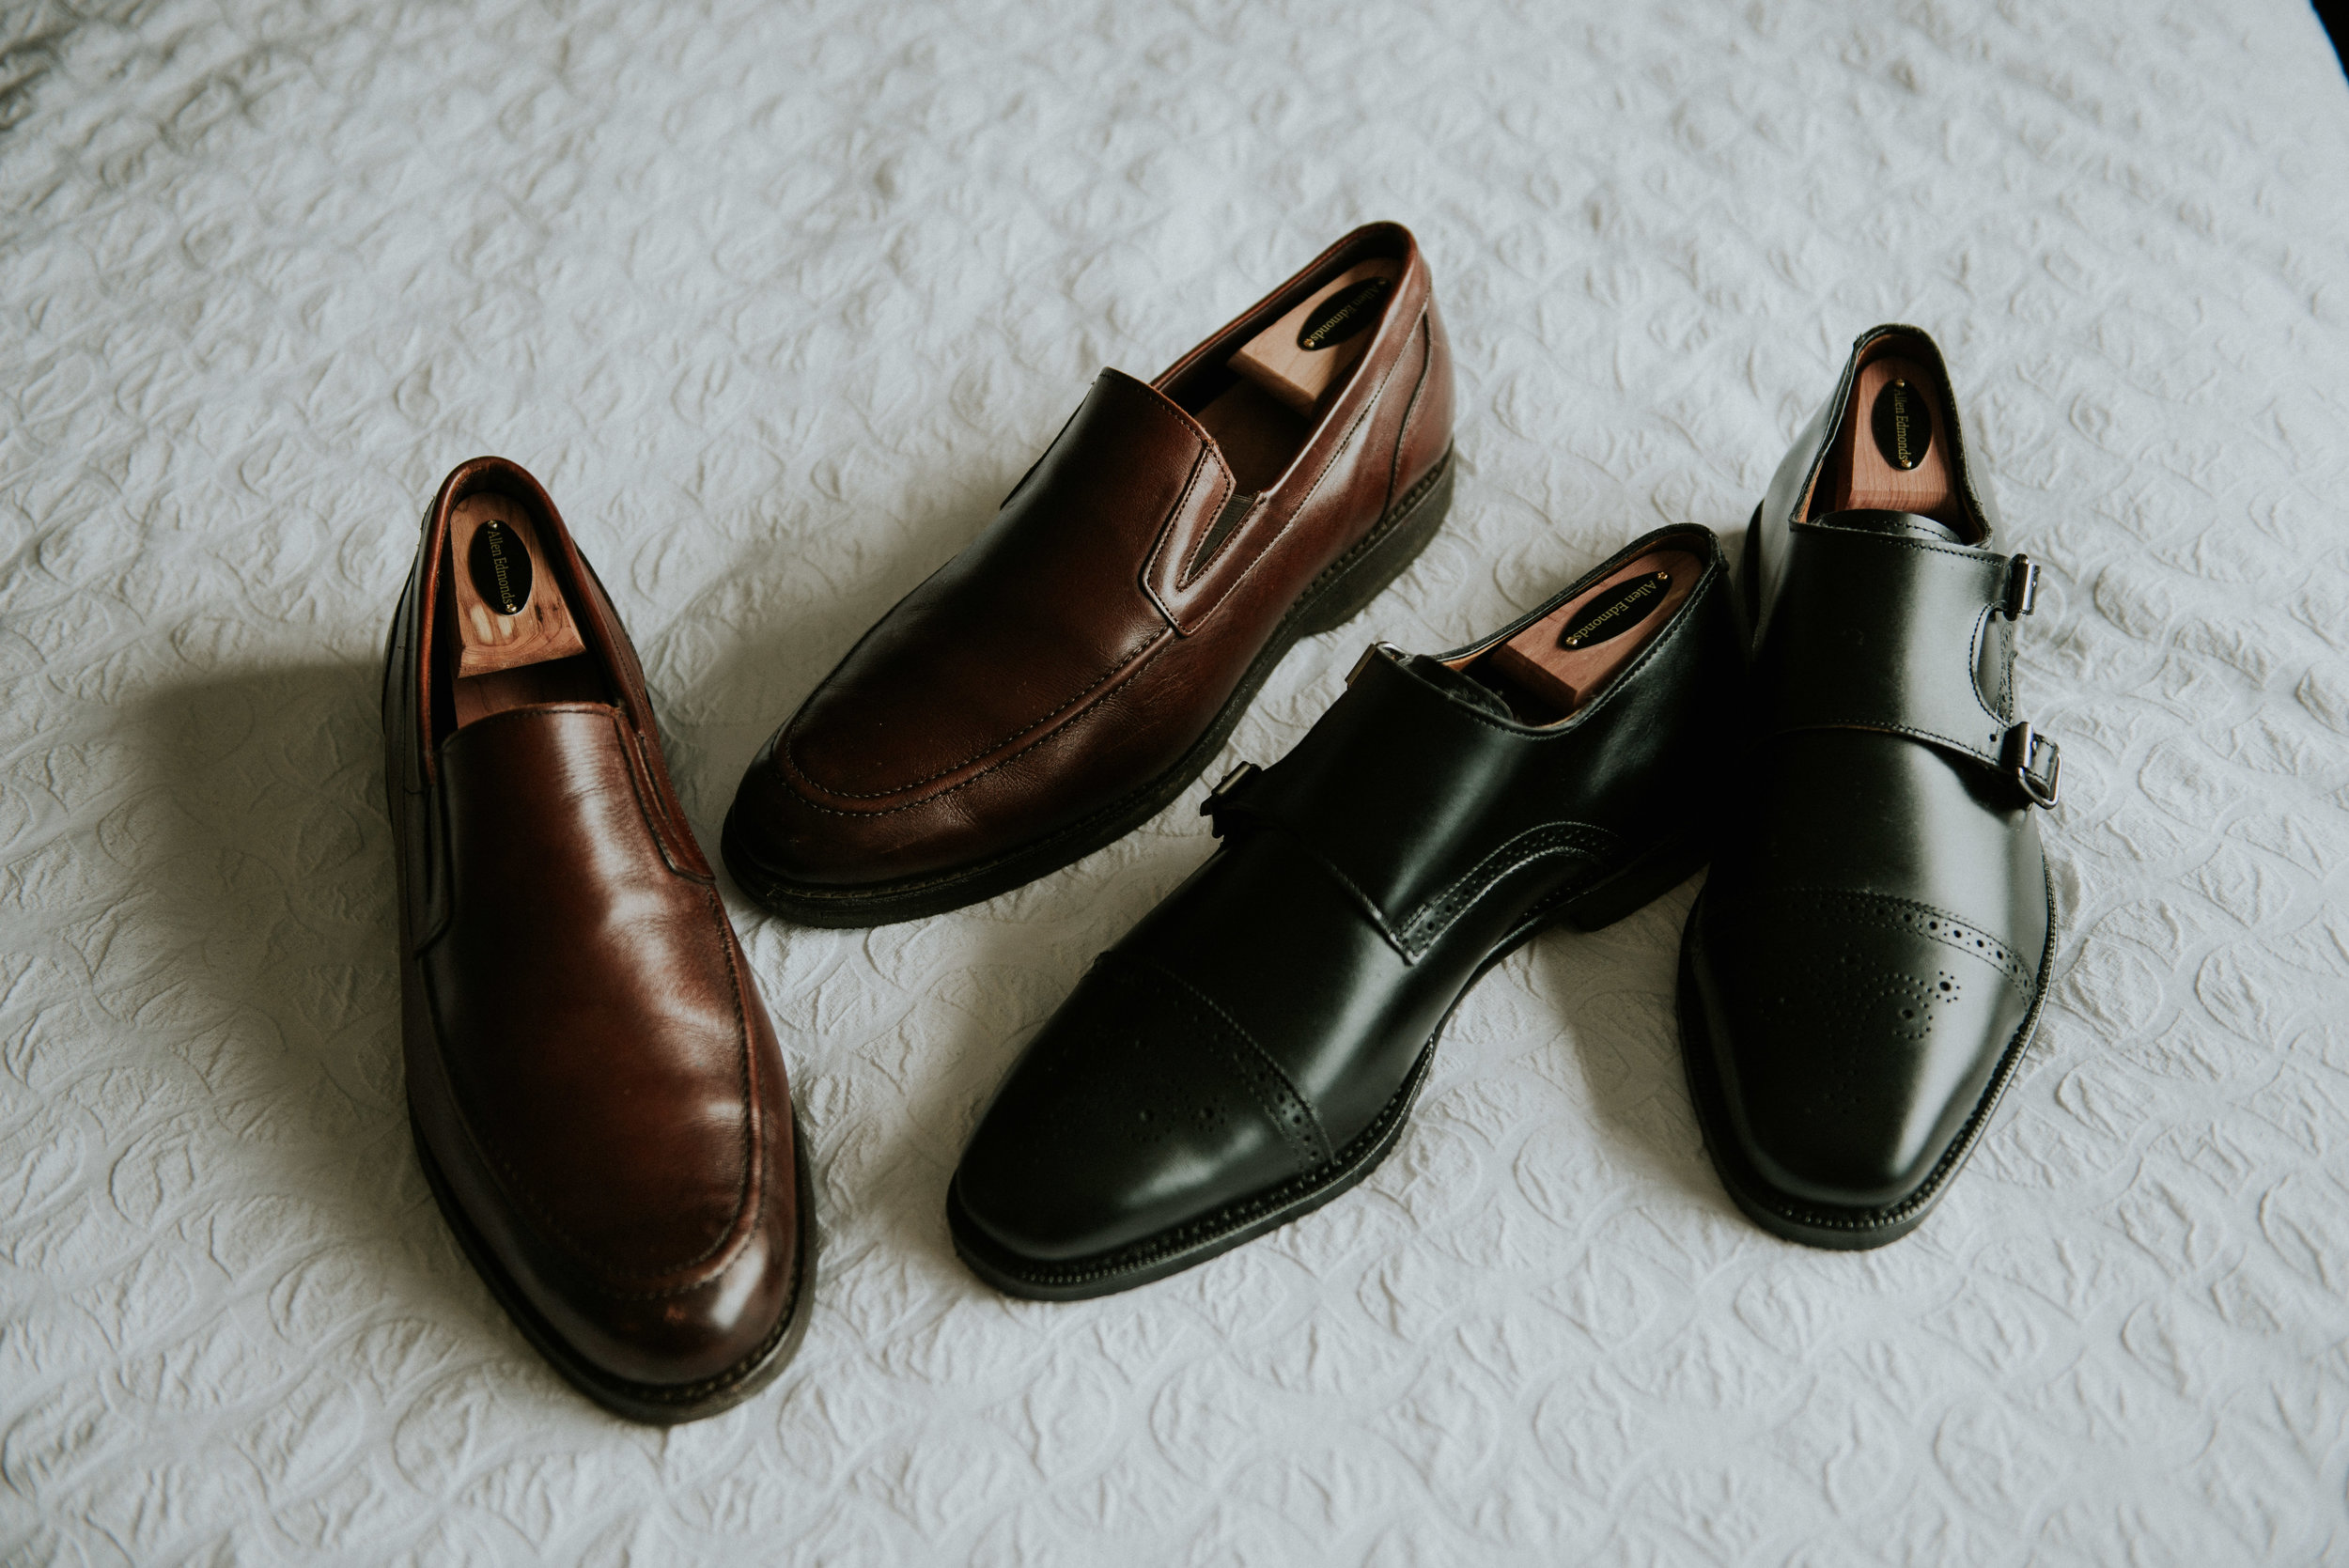 Two pairs of Allen Edmonds dress shoes scattered on a bed